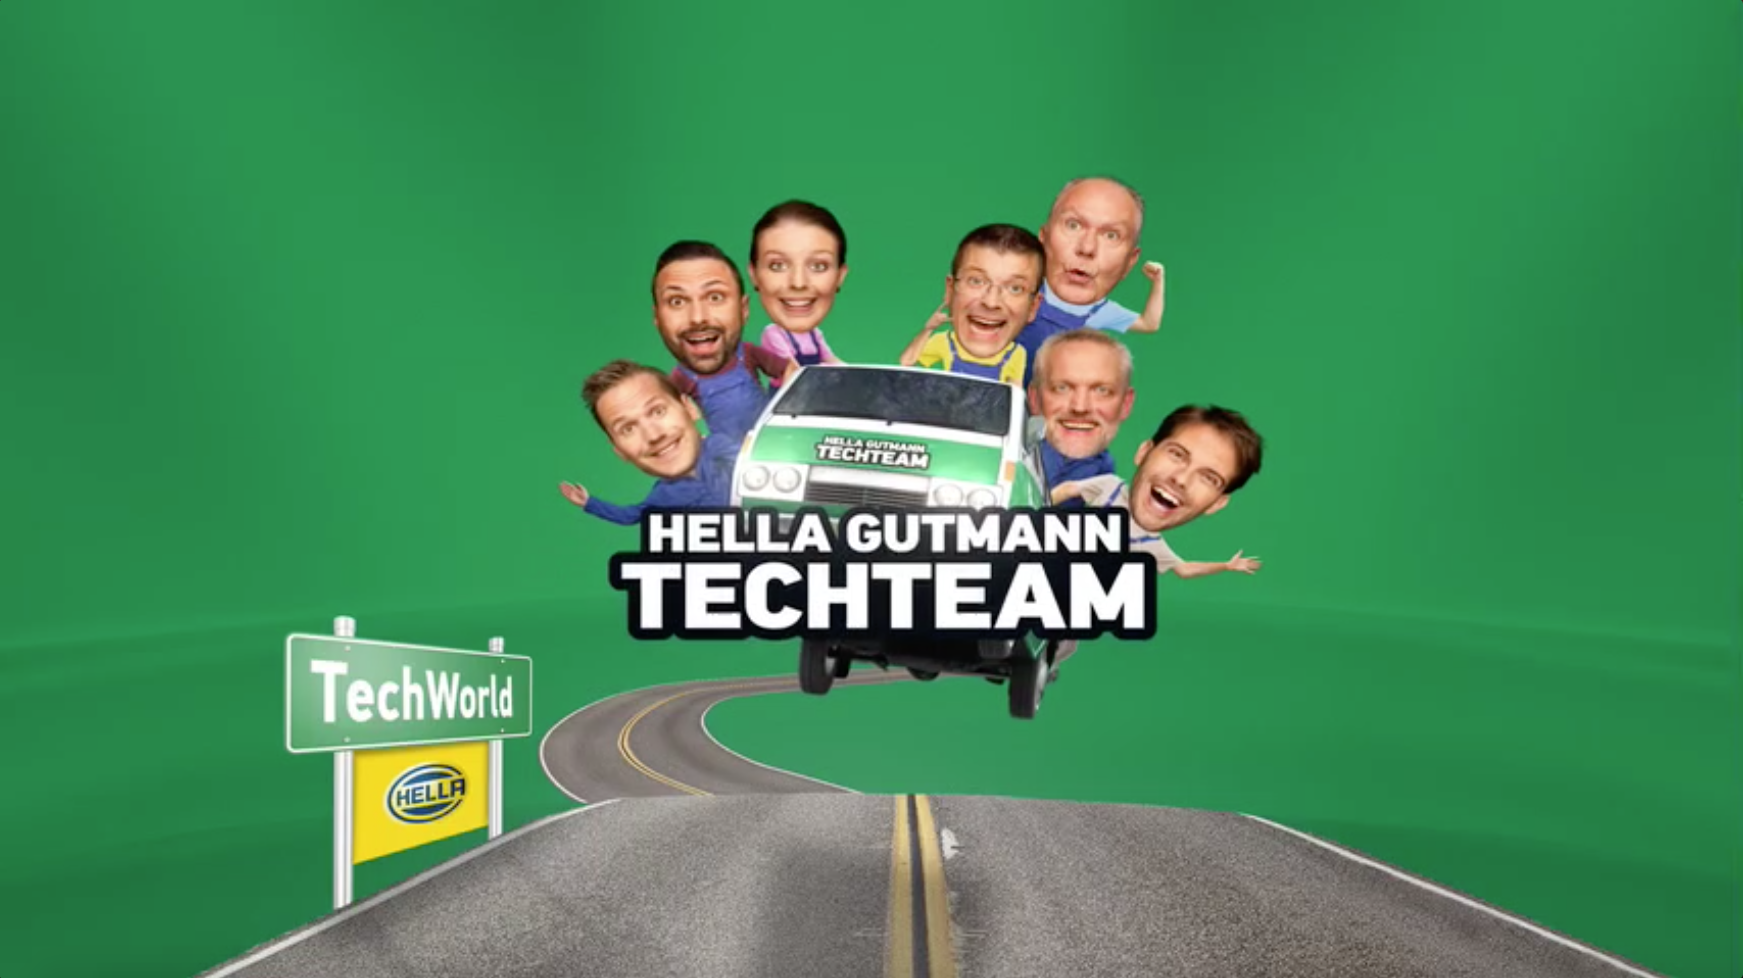 Hella TechTeam Animation Still Frame